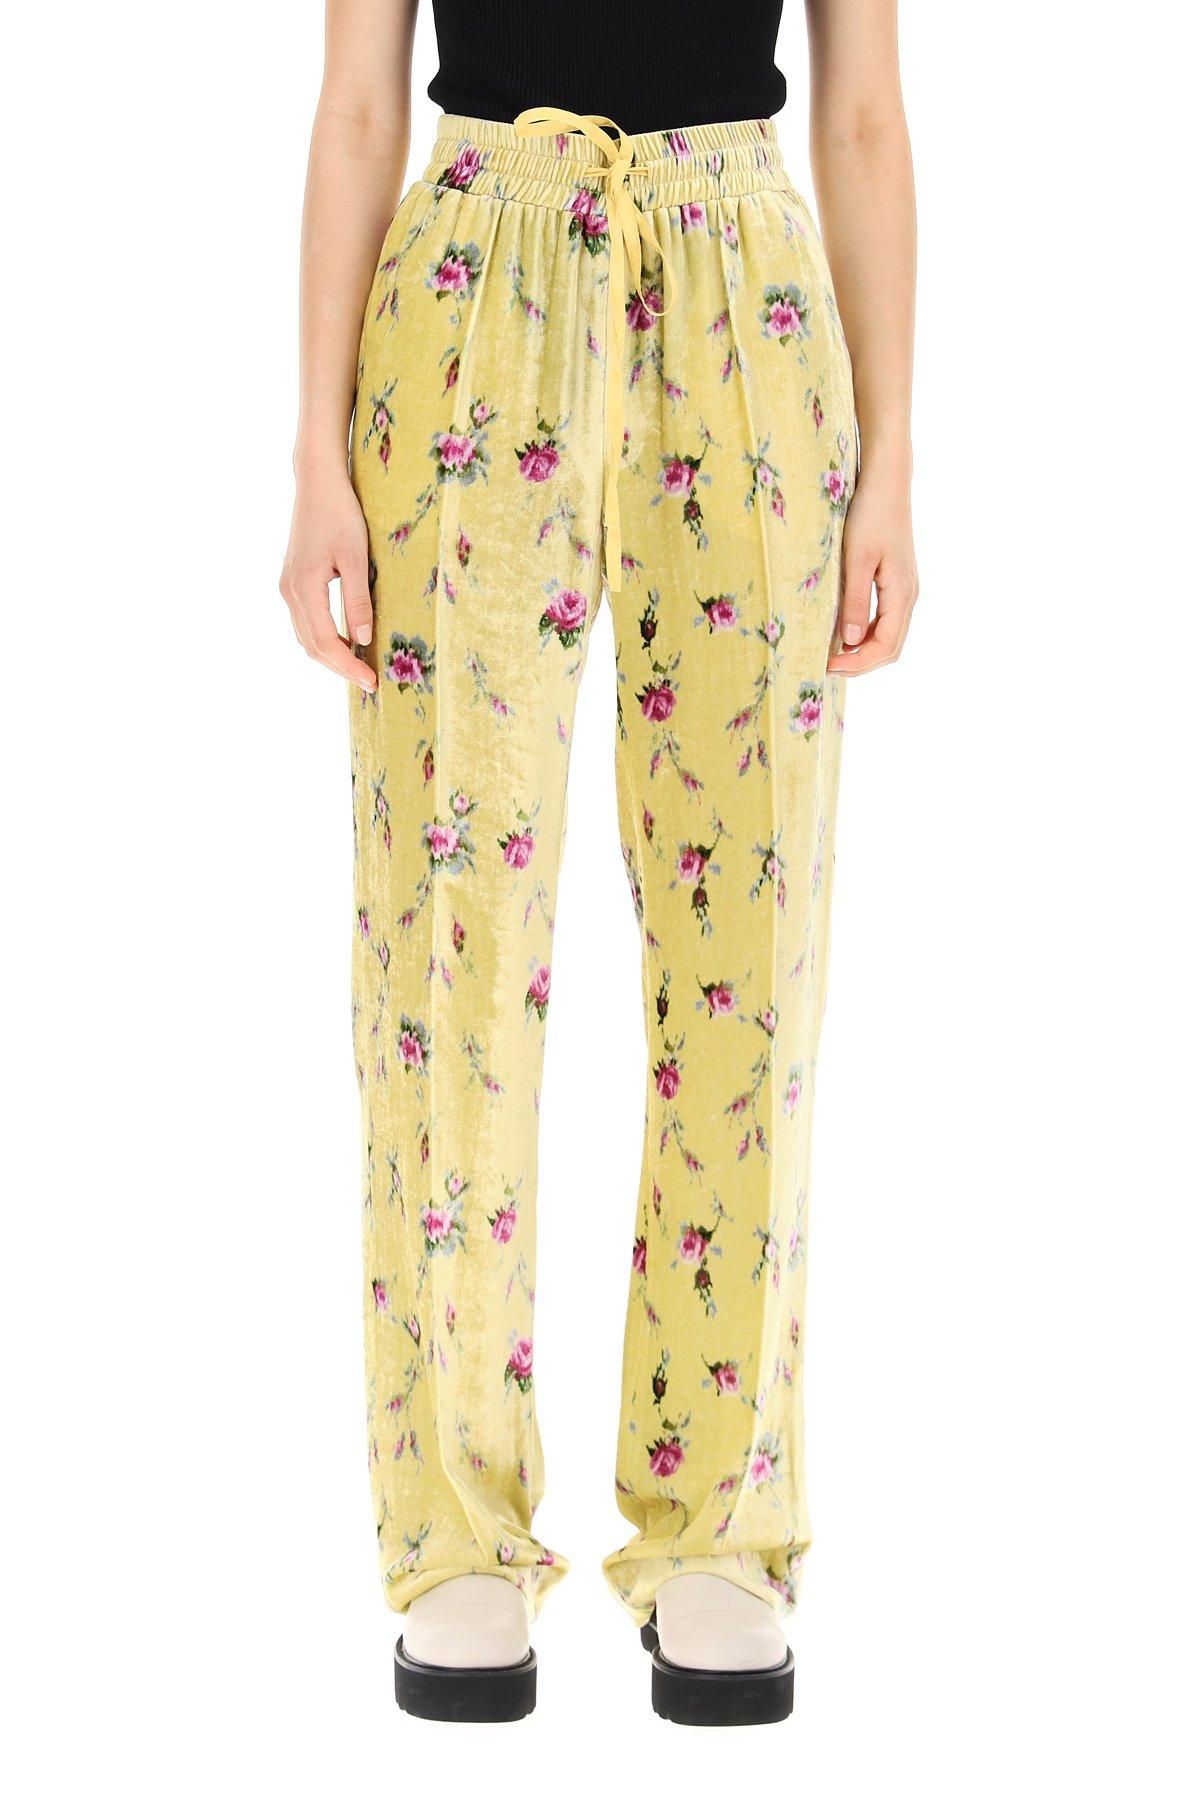 Red valentino pantaloni in velluto stampa sweet roses